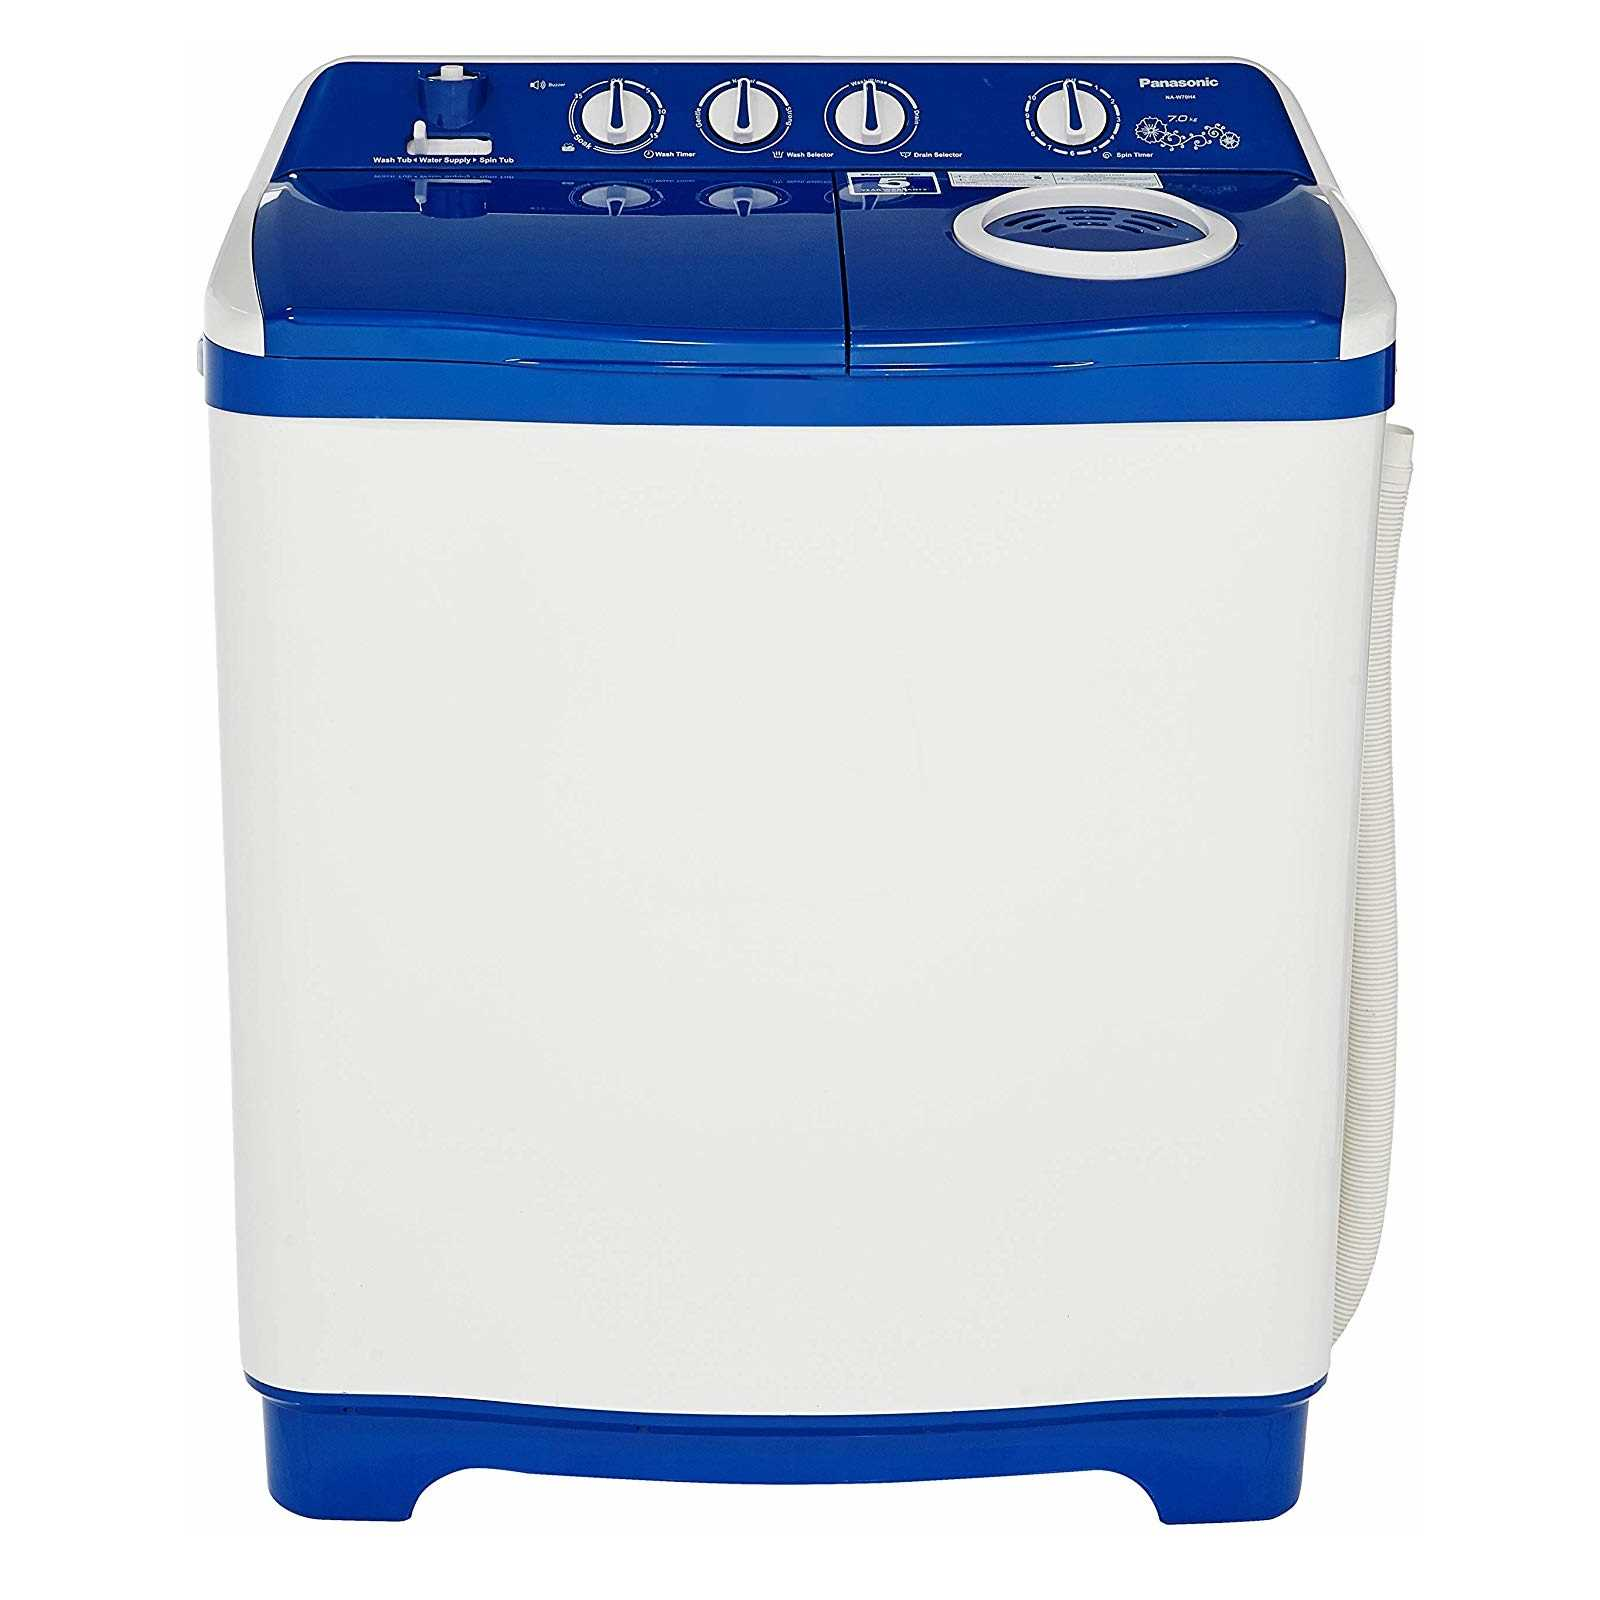 Panasonic NA W70H4 7 Kg Semi Automatic Top Loading Washing Machine